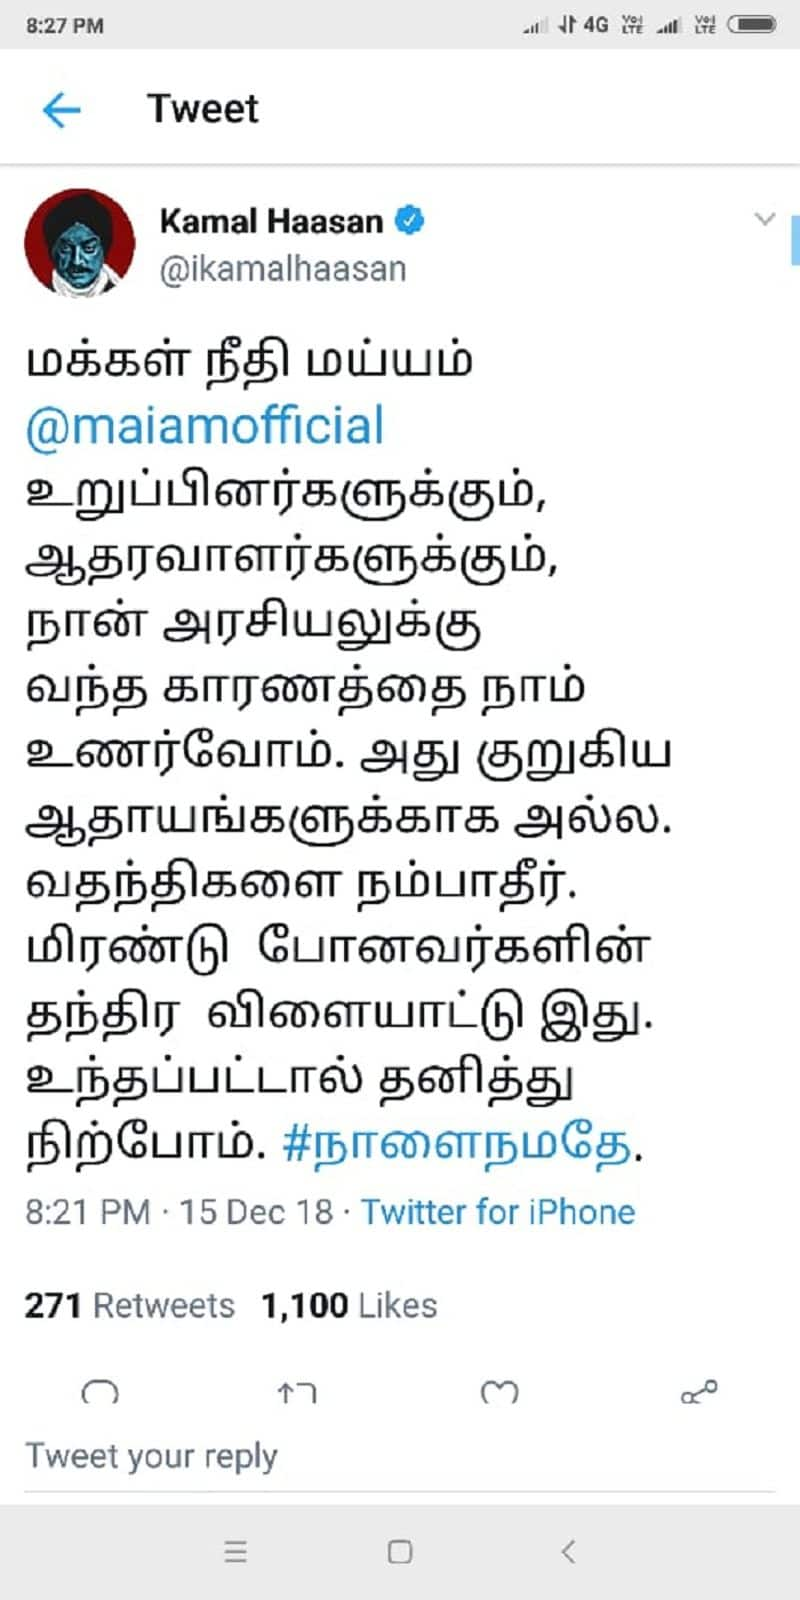 No alliance with dmk and congress